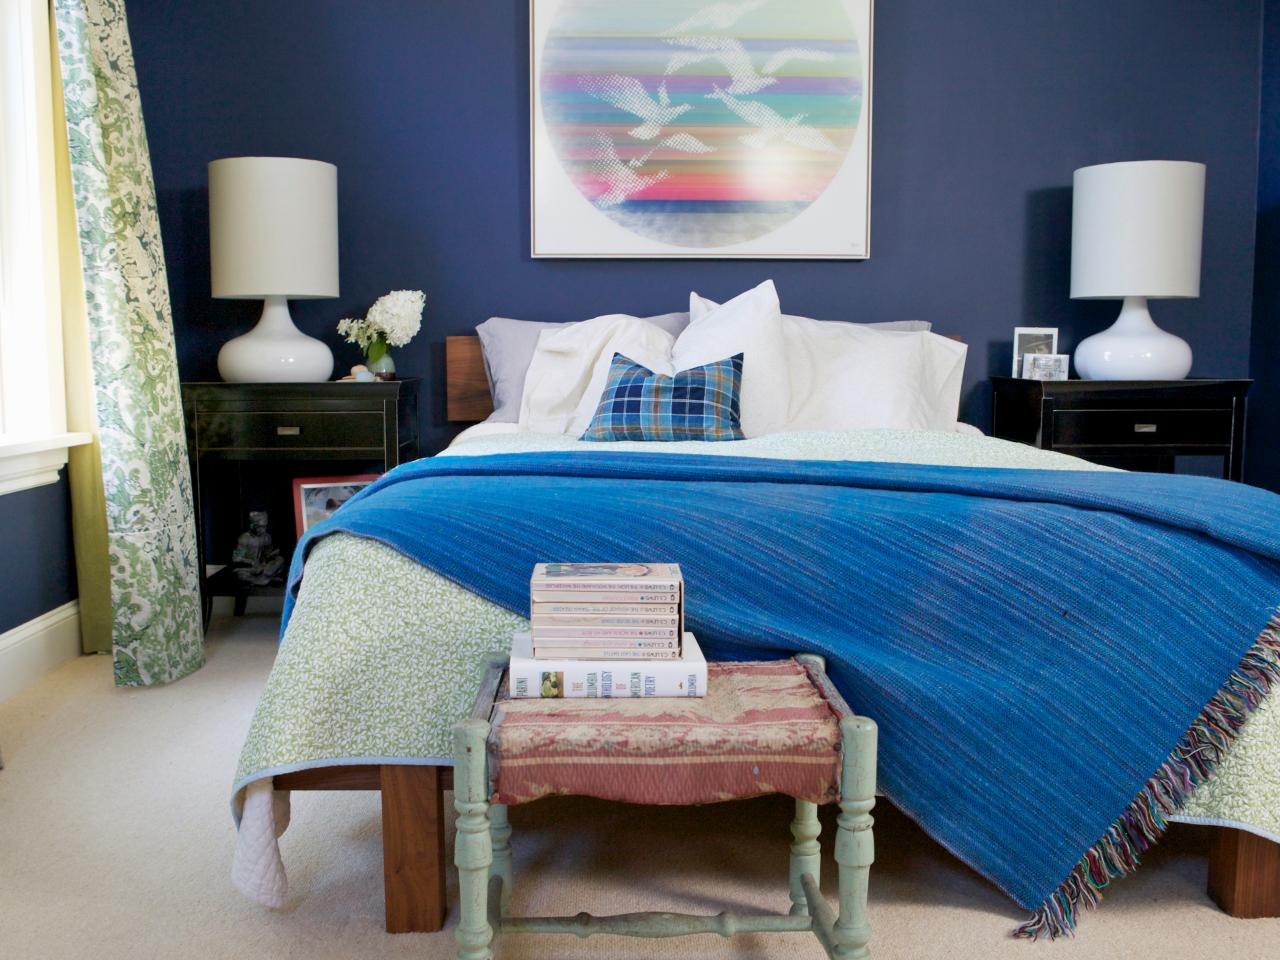 how to decorate a small sized bedroom icreativedwhat should the colour of the room be? these are small sized